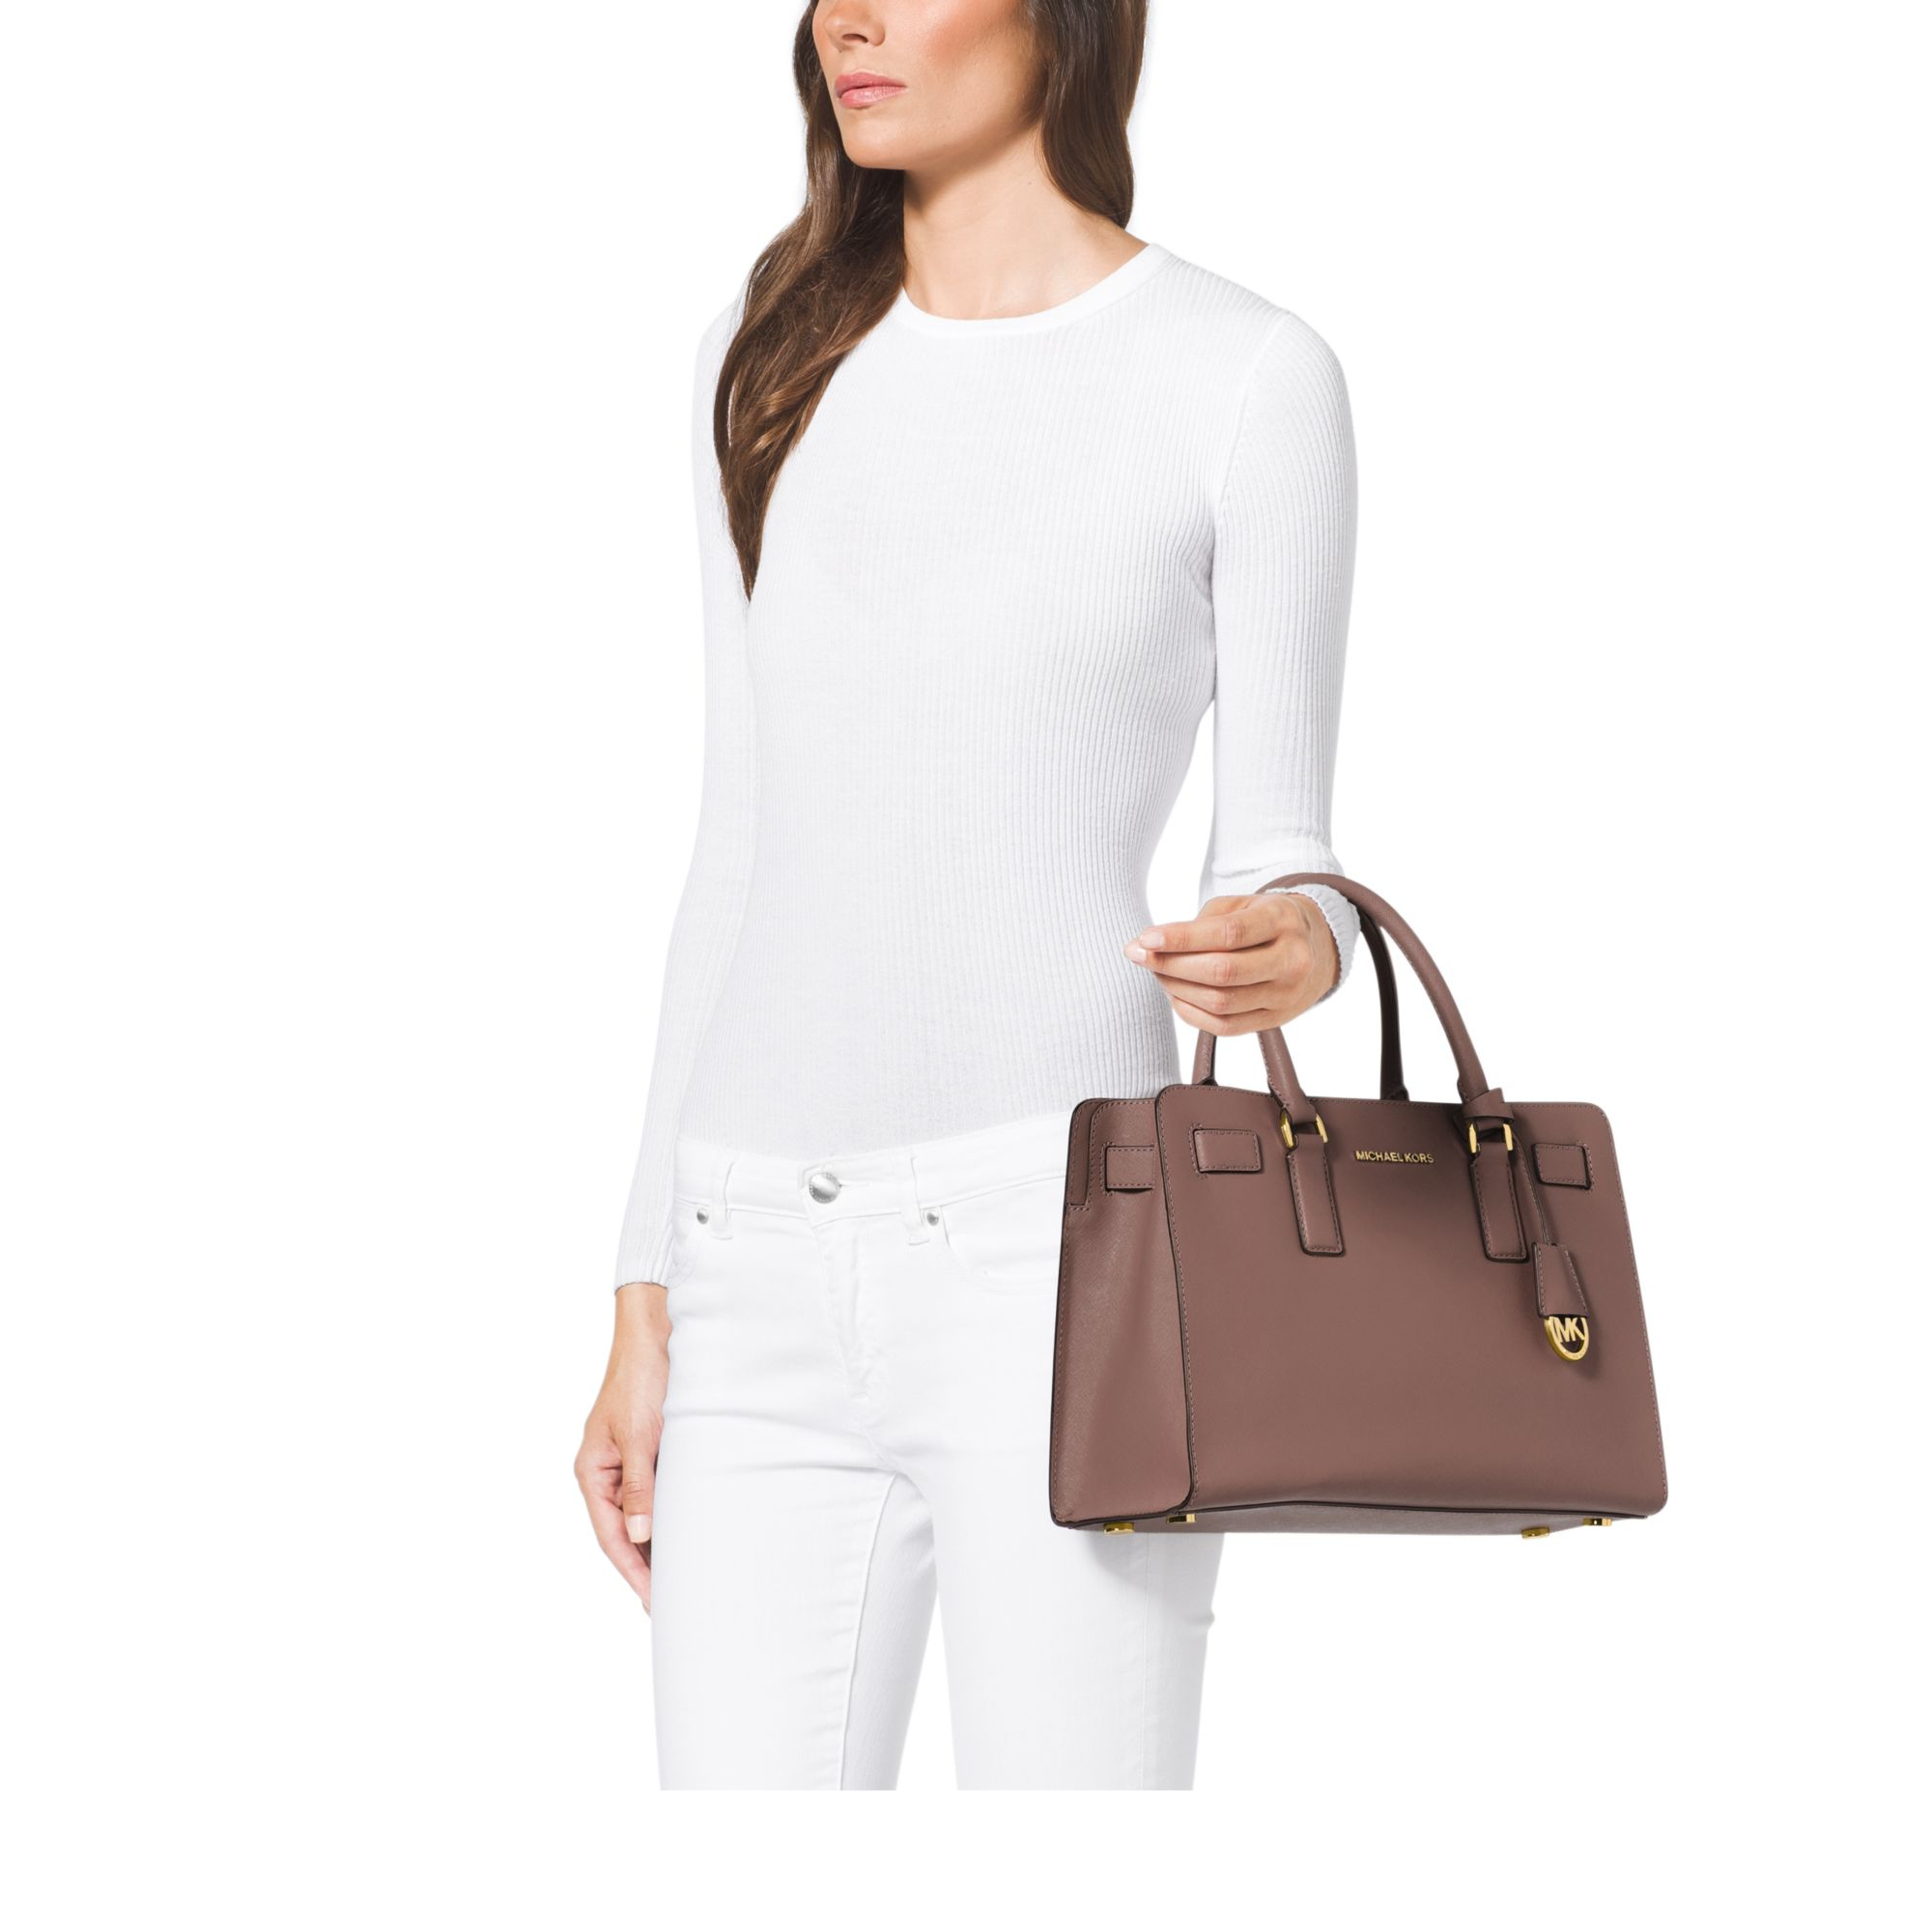 21e1f5f7e9 Lyst - Michael Kors Dillon Saffiano Leather Satchel in Natural